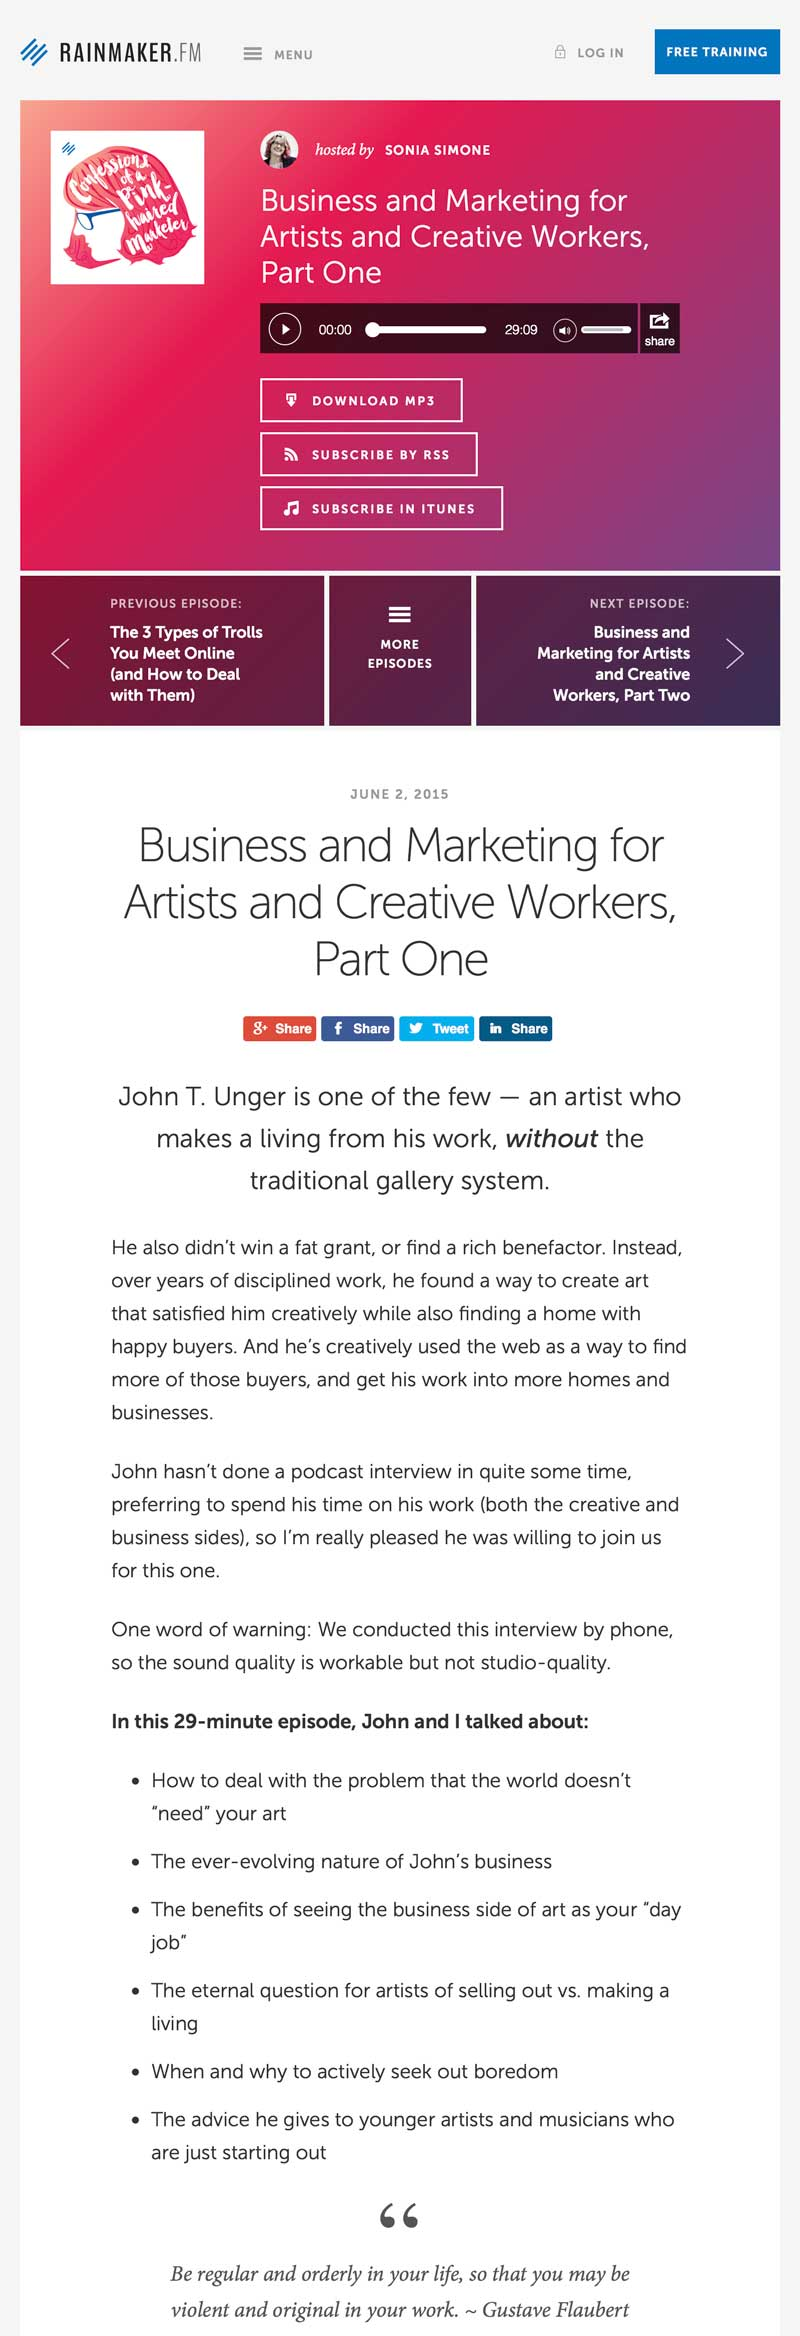 """Simone, Sonia. """"Business and Marketing for Artists and Creative Workers, Part One."""" The Confessions of a Pink-Haired Marketer, Rainmaker.FM"""